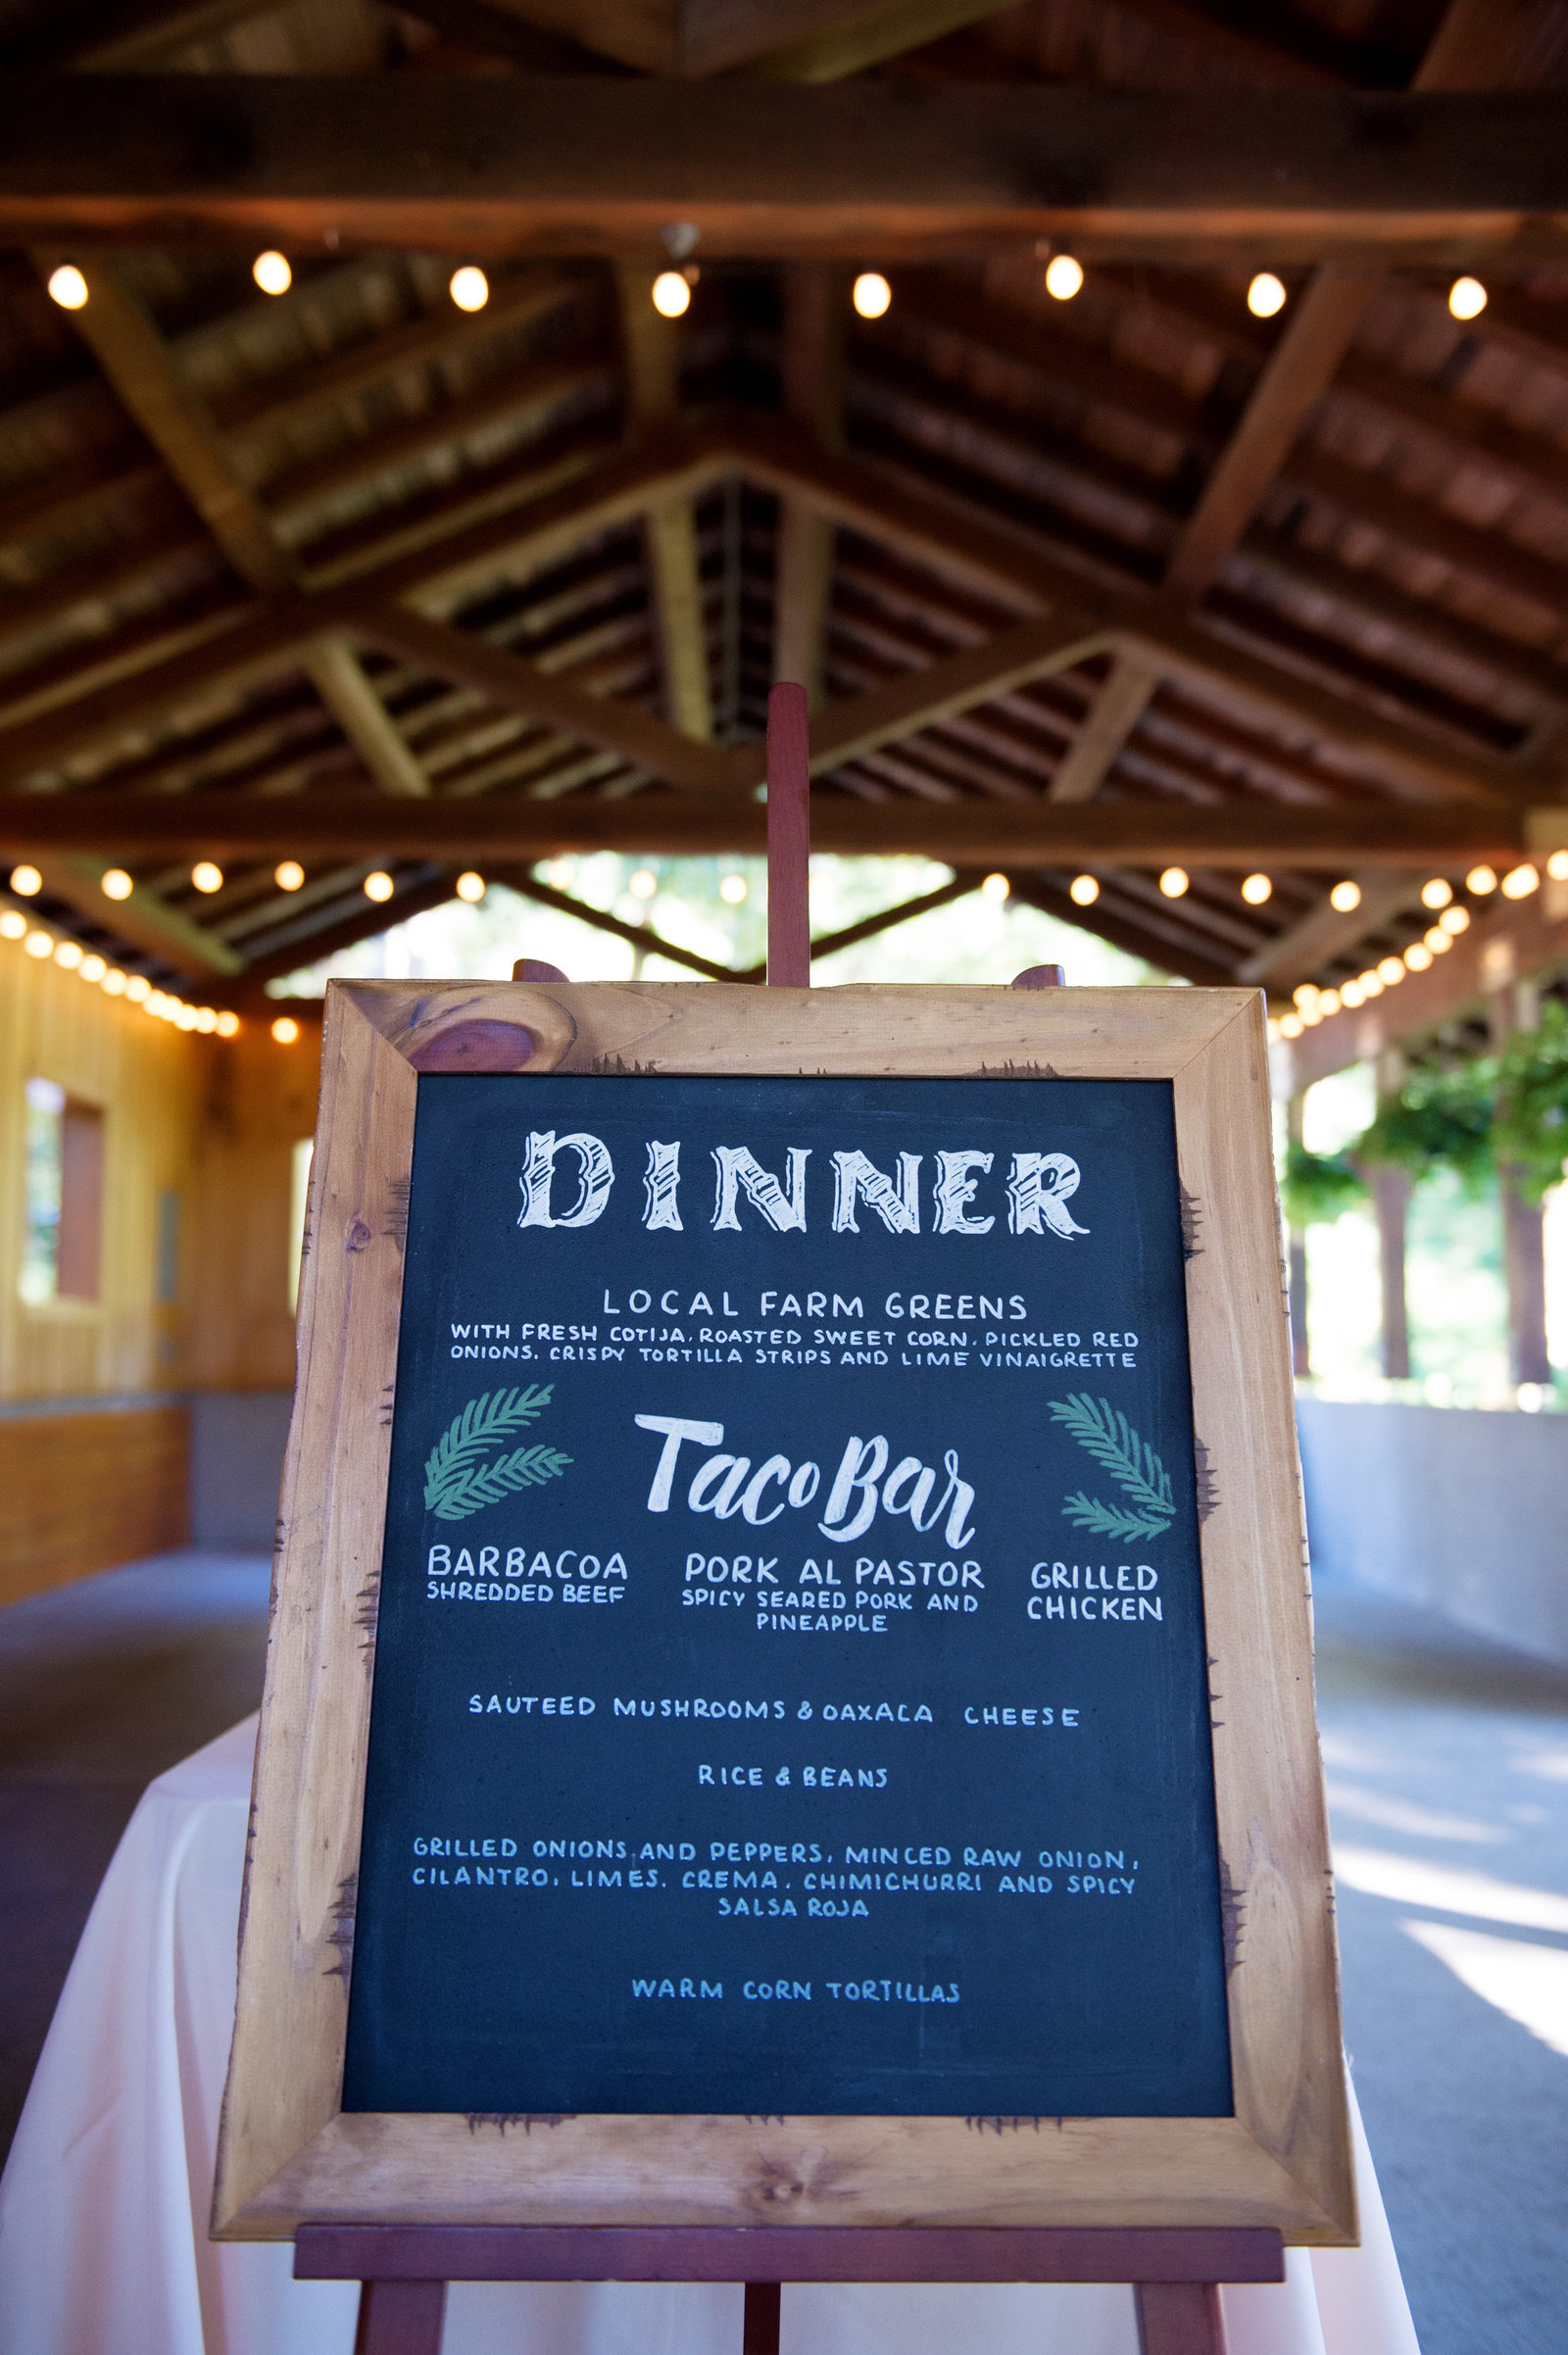 Taco bar dinner menu wedding sign